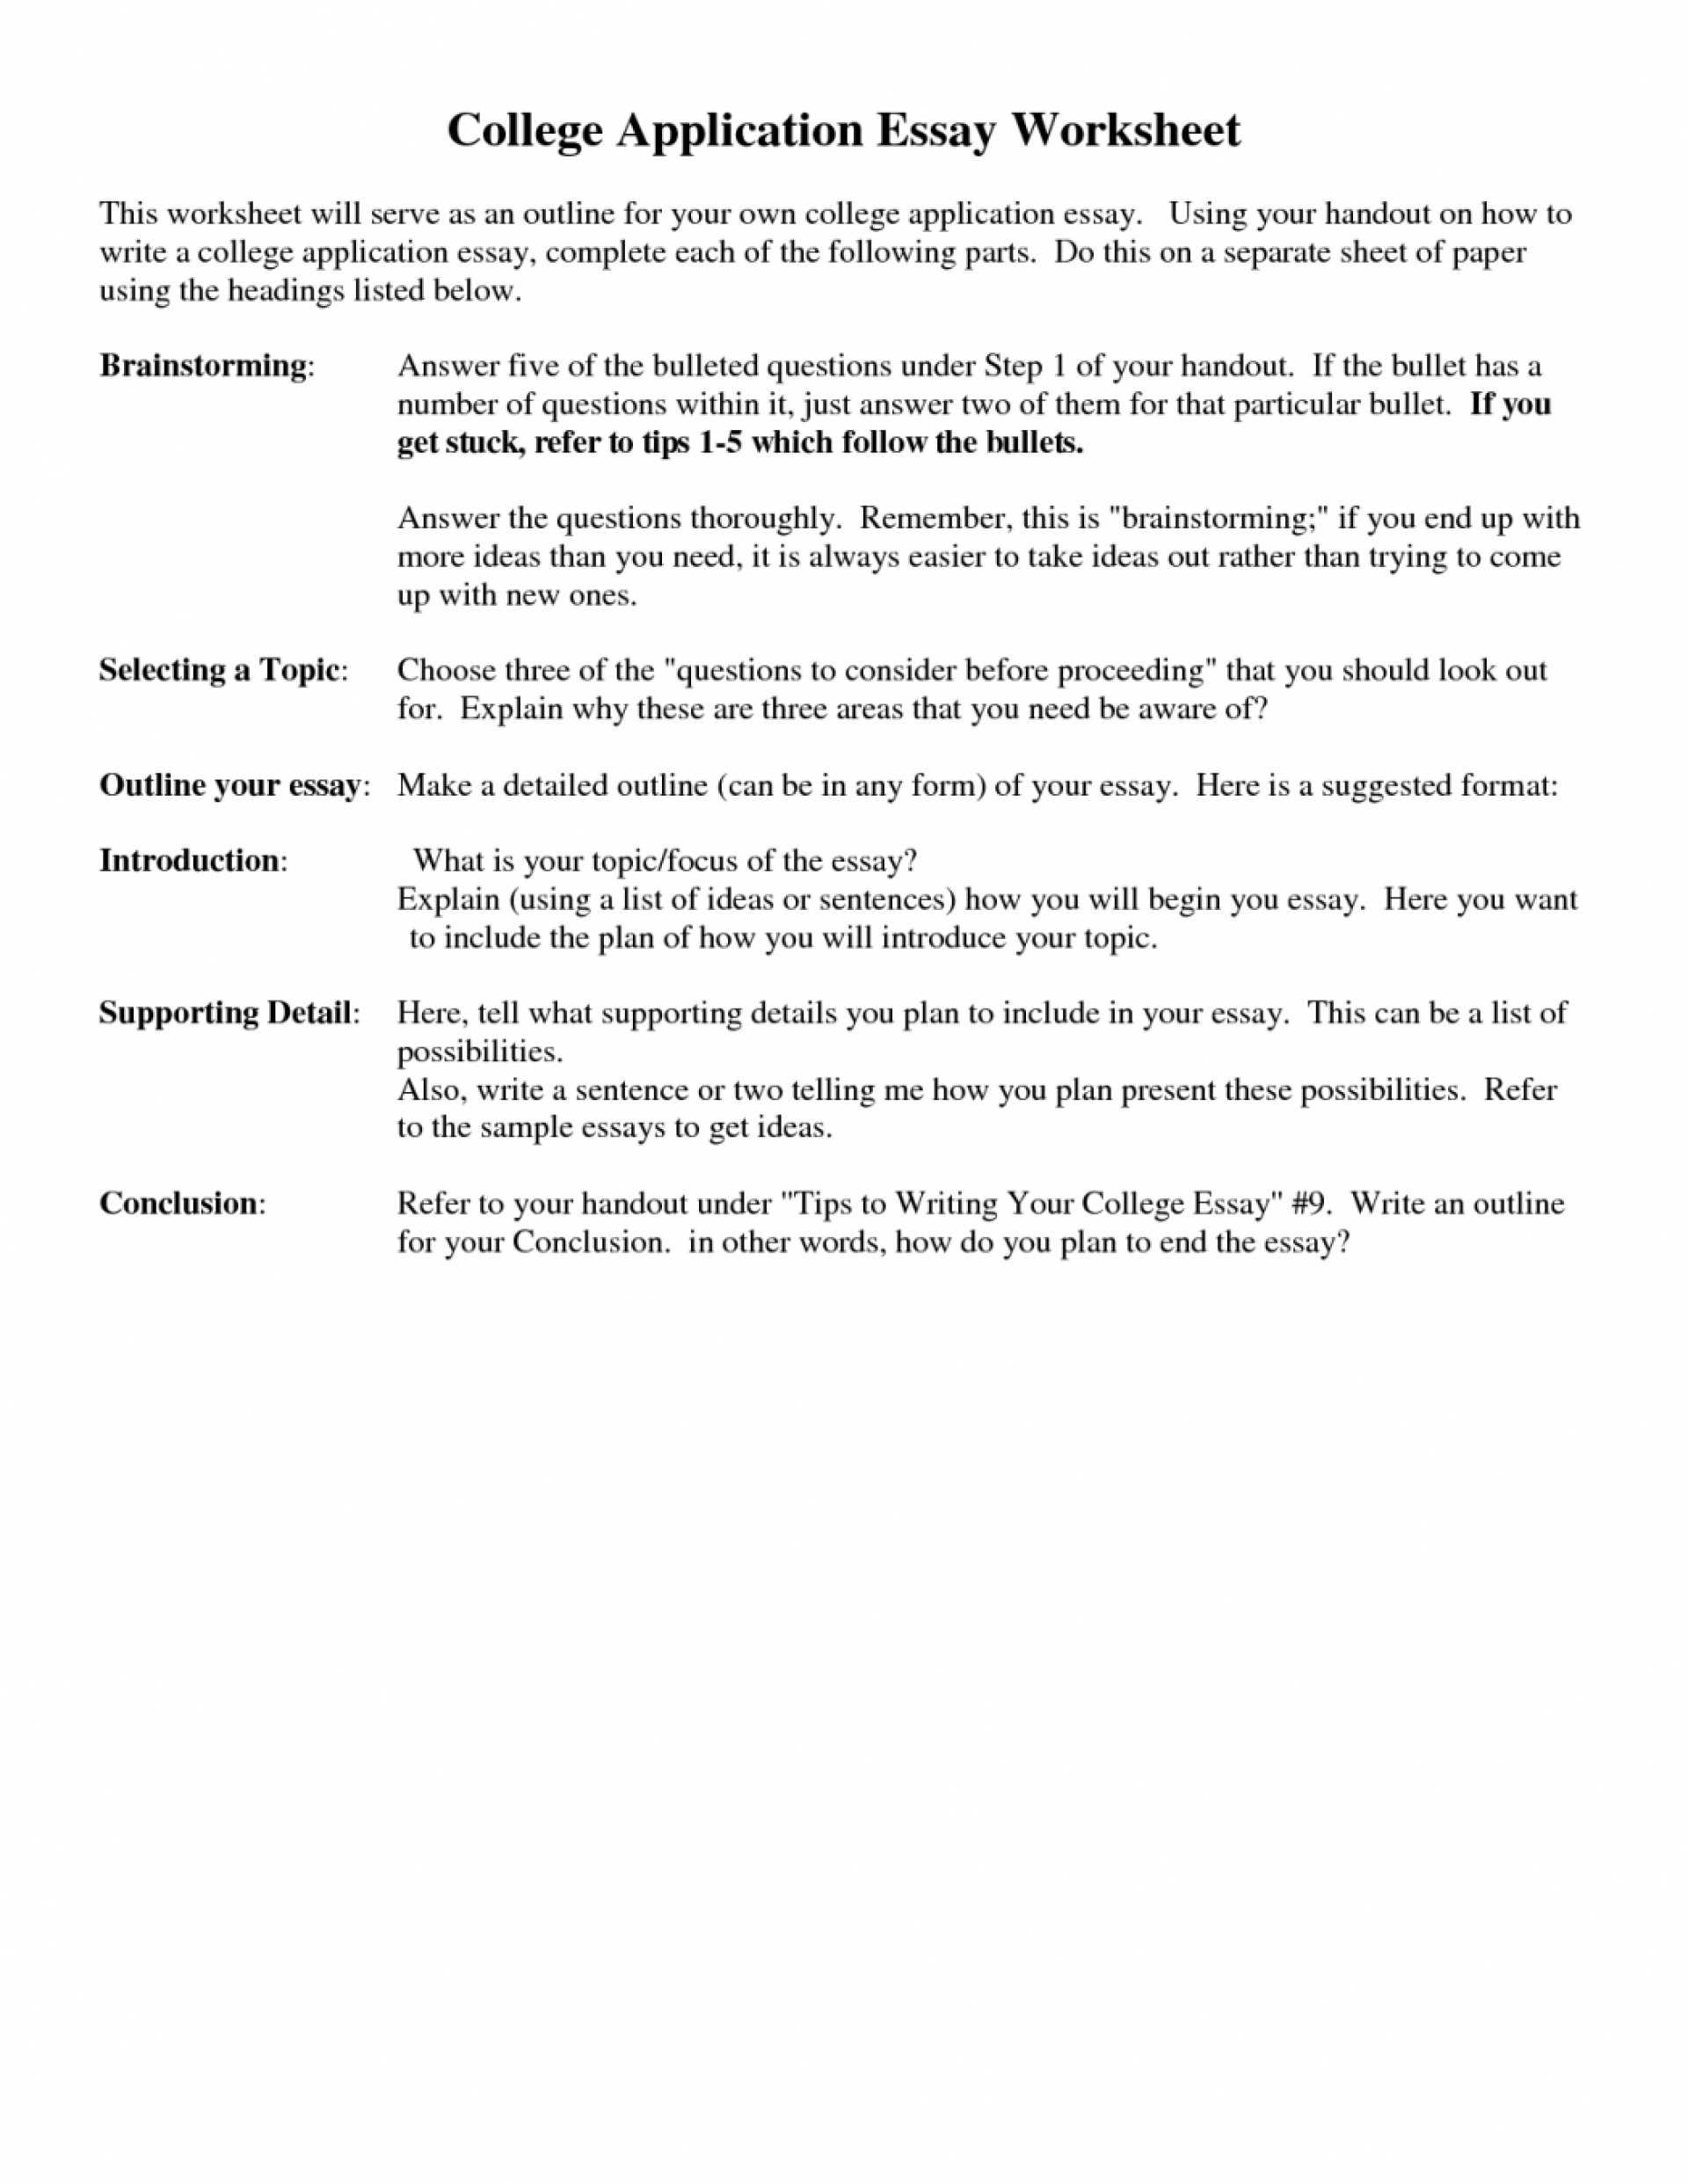 013 Images Of Collegessay Outline Template Leseriail Com How To Write Application That Stands Out Writing About Yourselfxamples Topics On Tips Forxample Introduction 1048x1356 Striking College Essay Heading Format Example Pdf Research Paper 1920